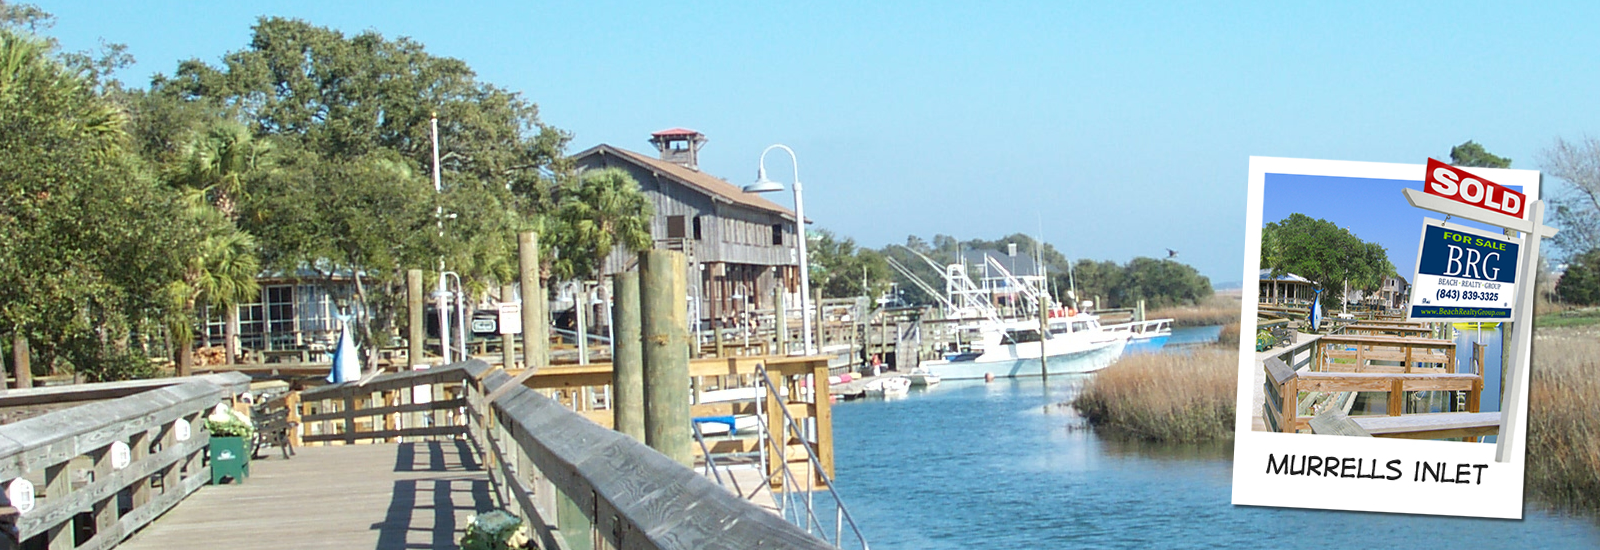 Murrells Inlet Real Estate Murrells Inlet Homes Condos For Sale